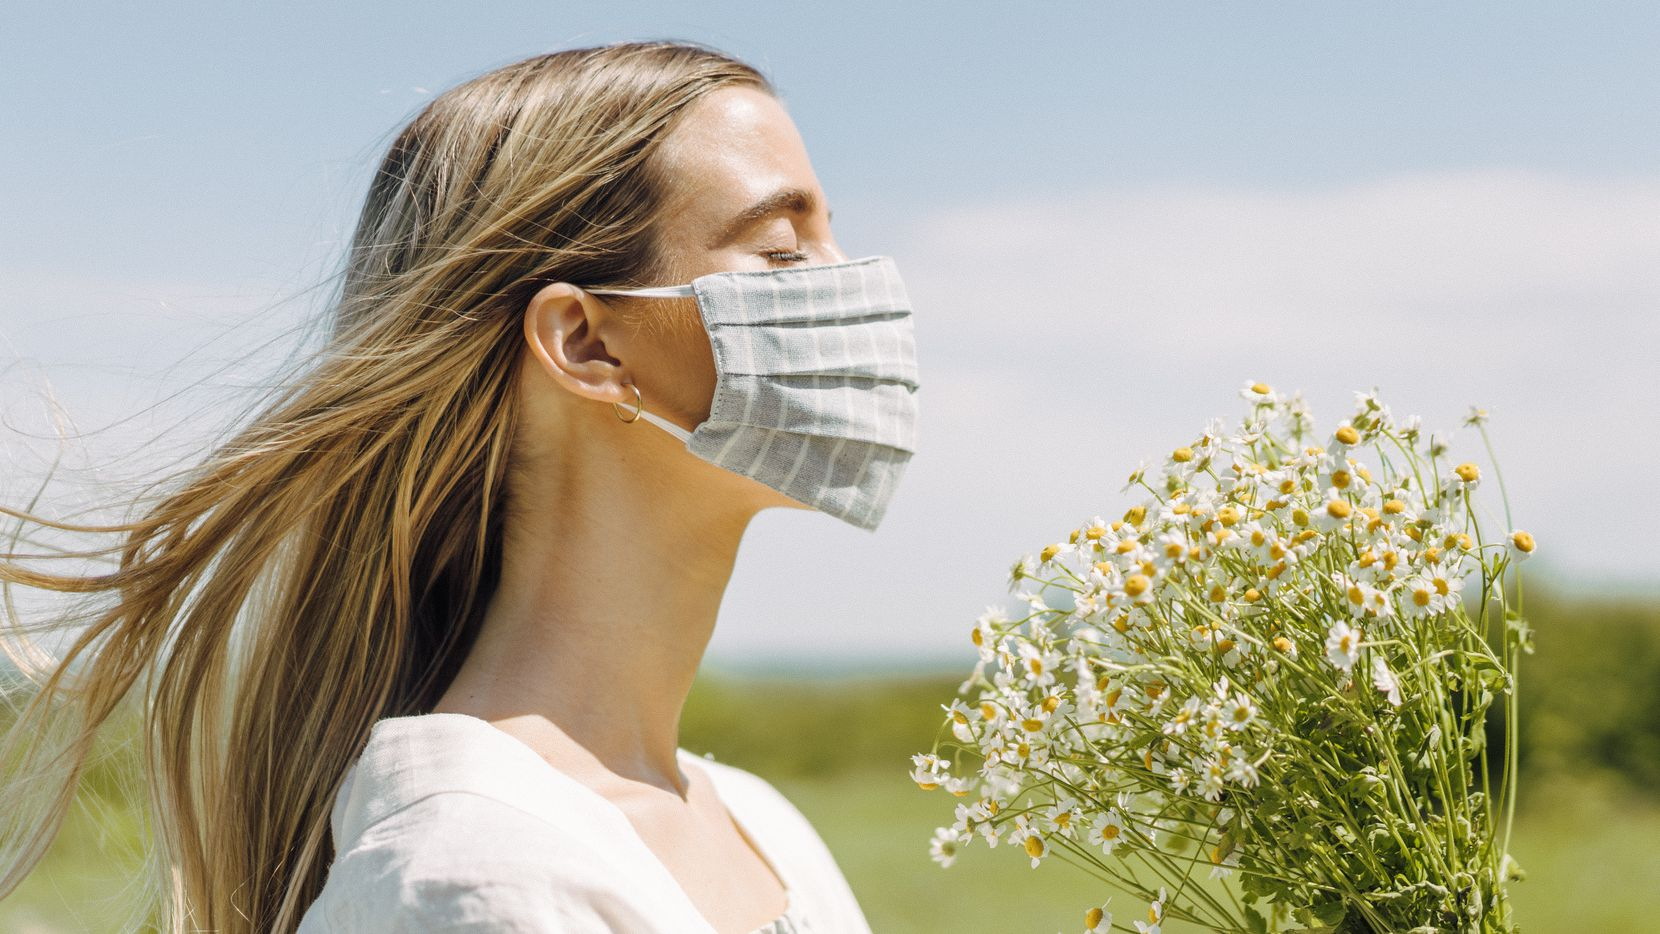 Does wearing mask reduces oxygen levels?